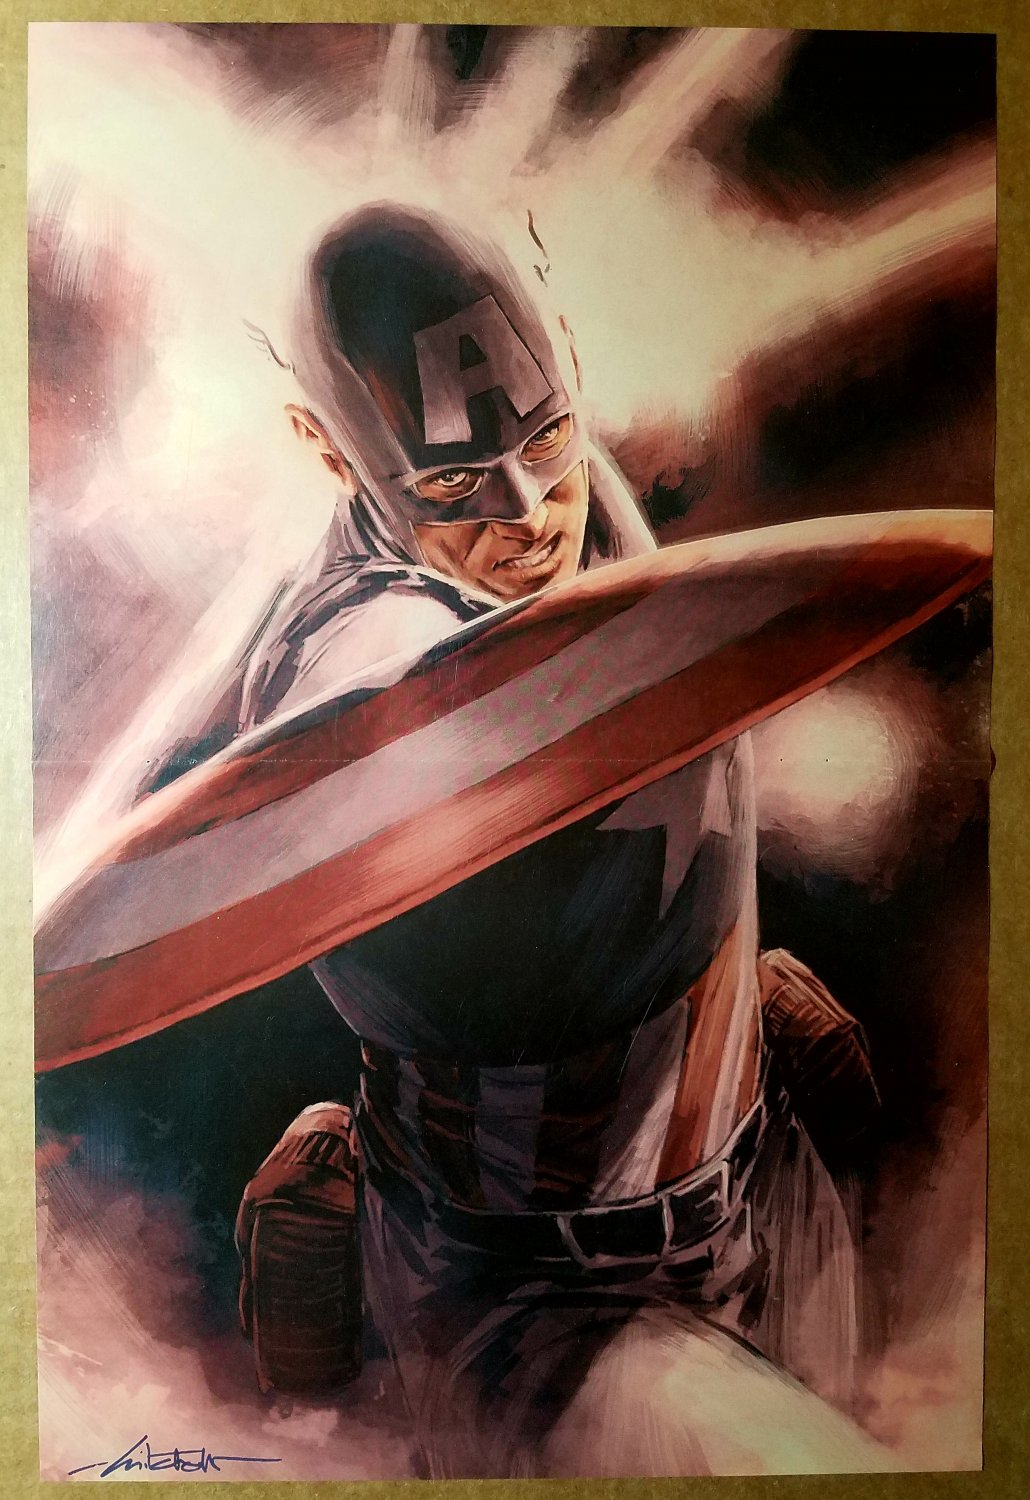 Captain America Theater of War Marvel Comics Poster by Mitch Breitweiser